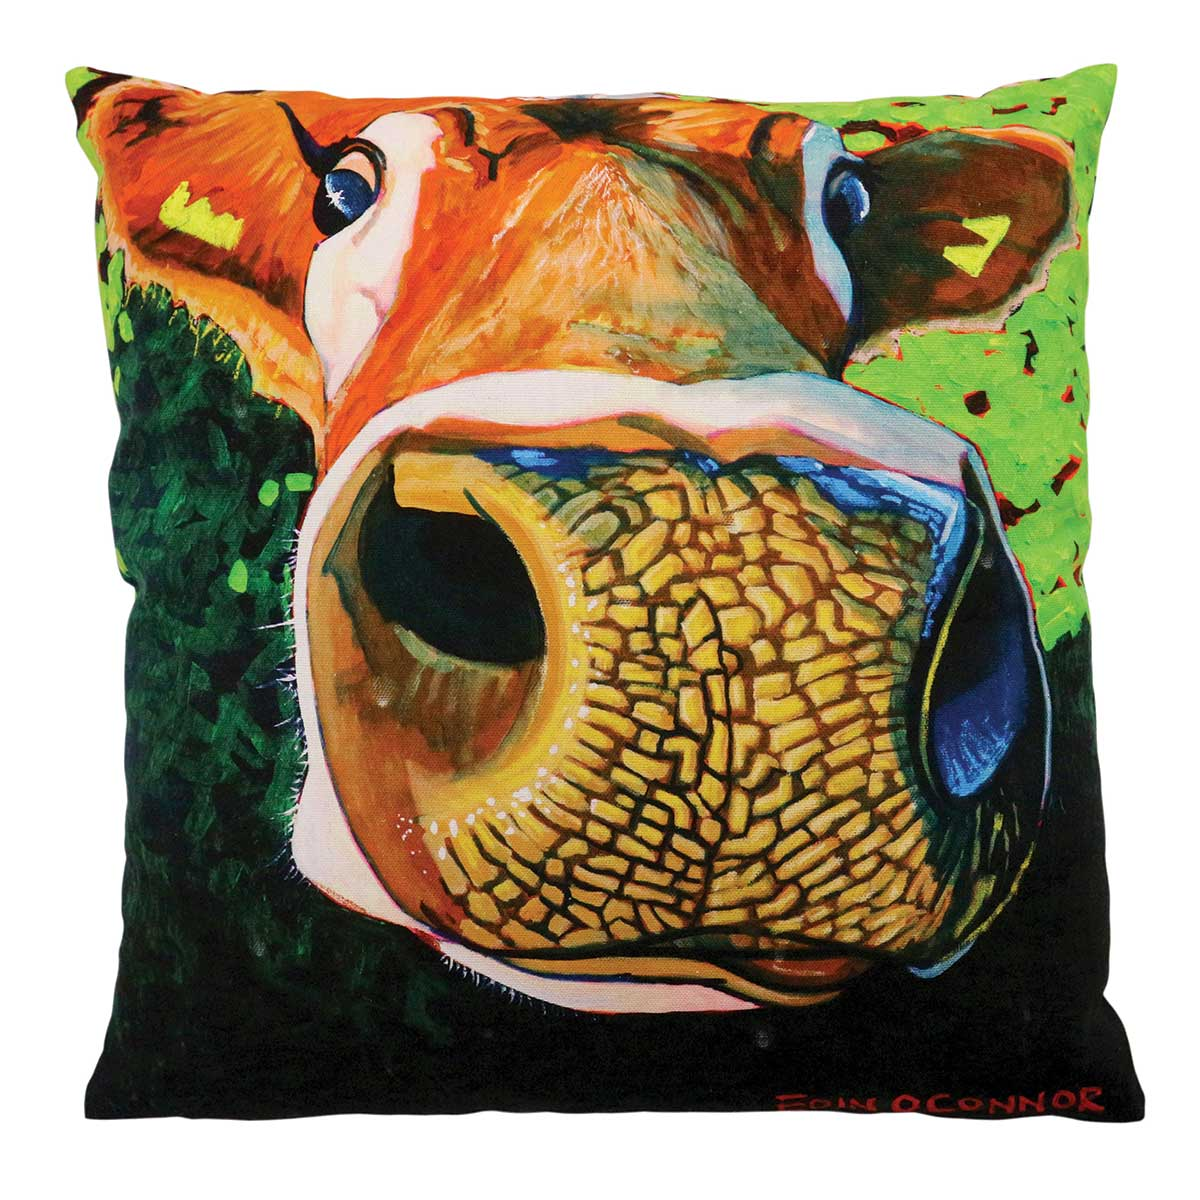 Reach for the stars 45cm x 45cm Luxury cushion